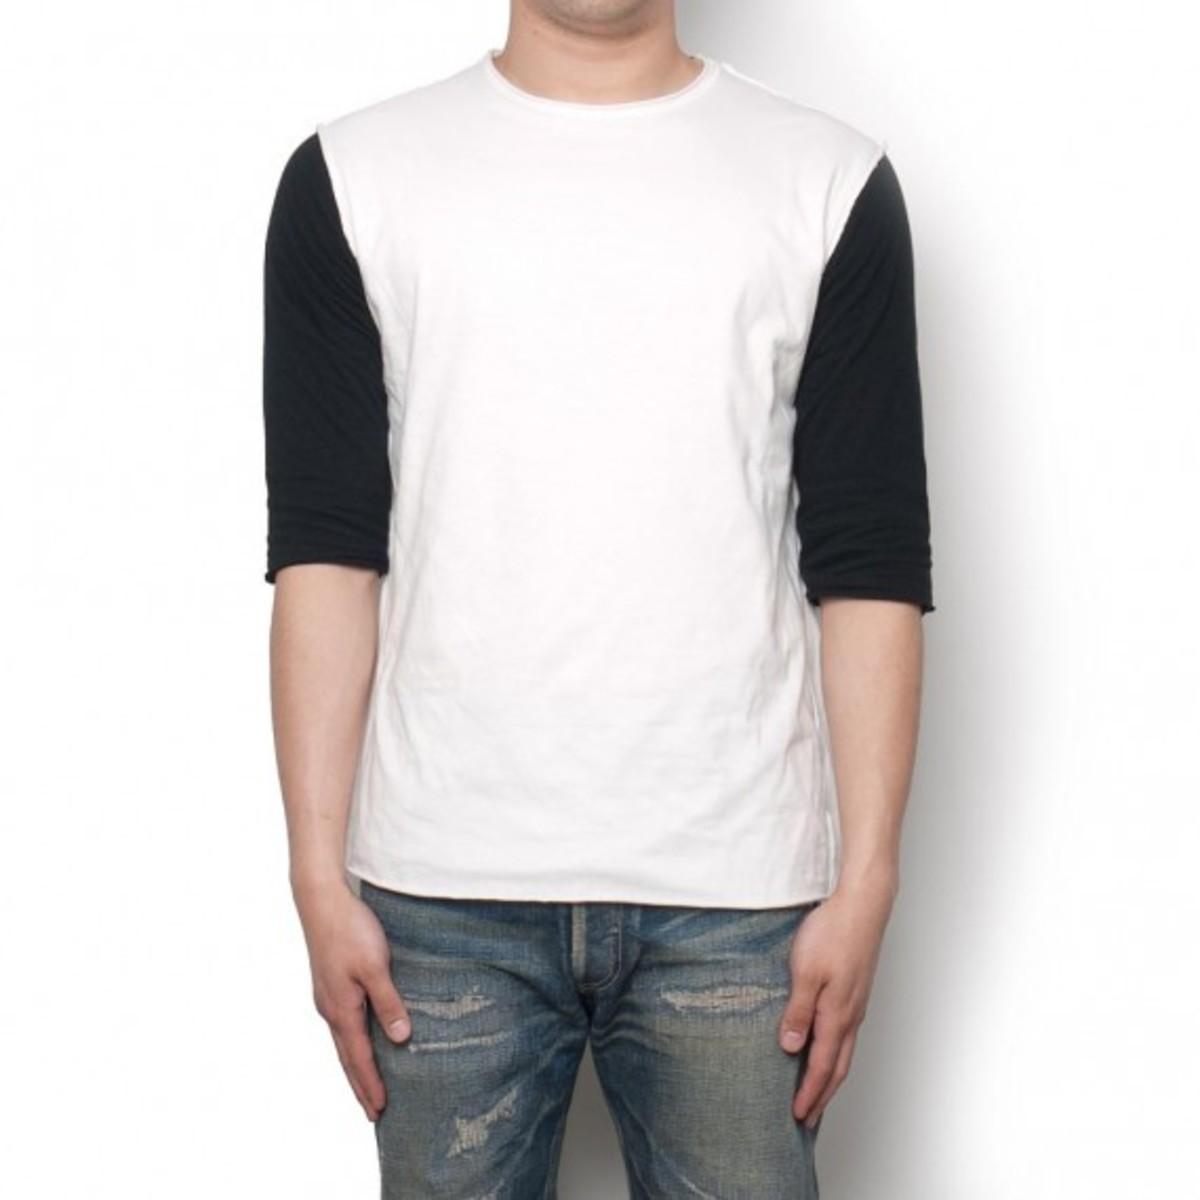 NEXUSVII-spring-summer-2012-collection-30